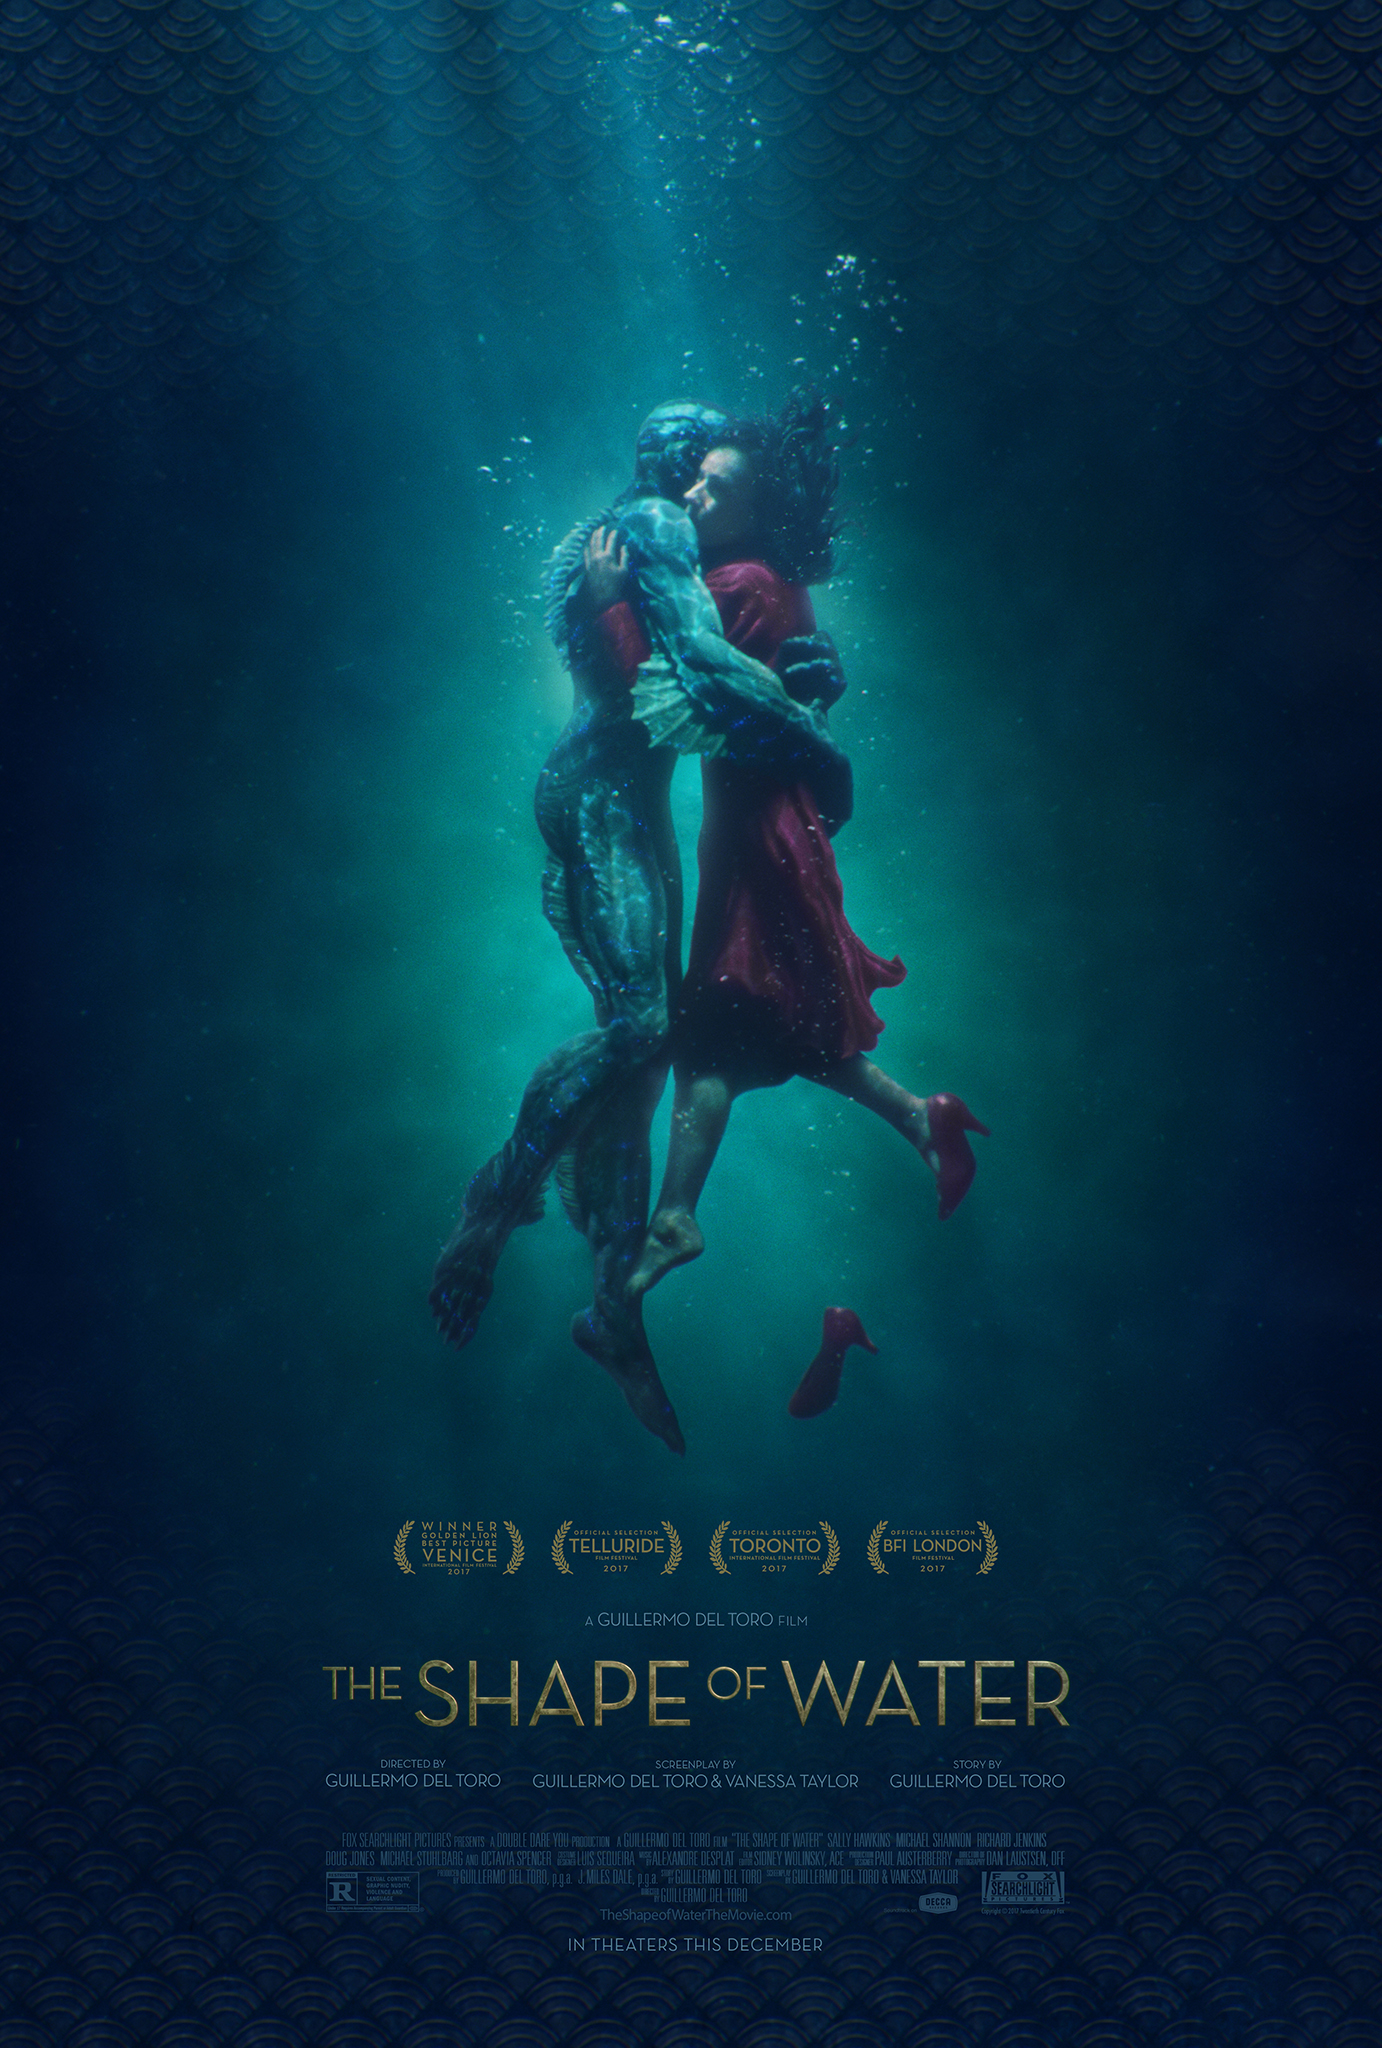 The Shape of Water 2017 IMDb